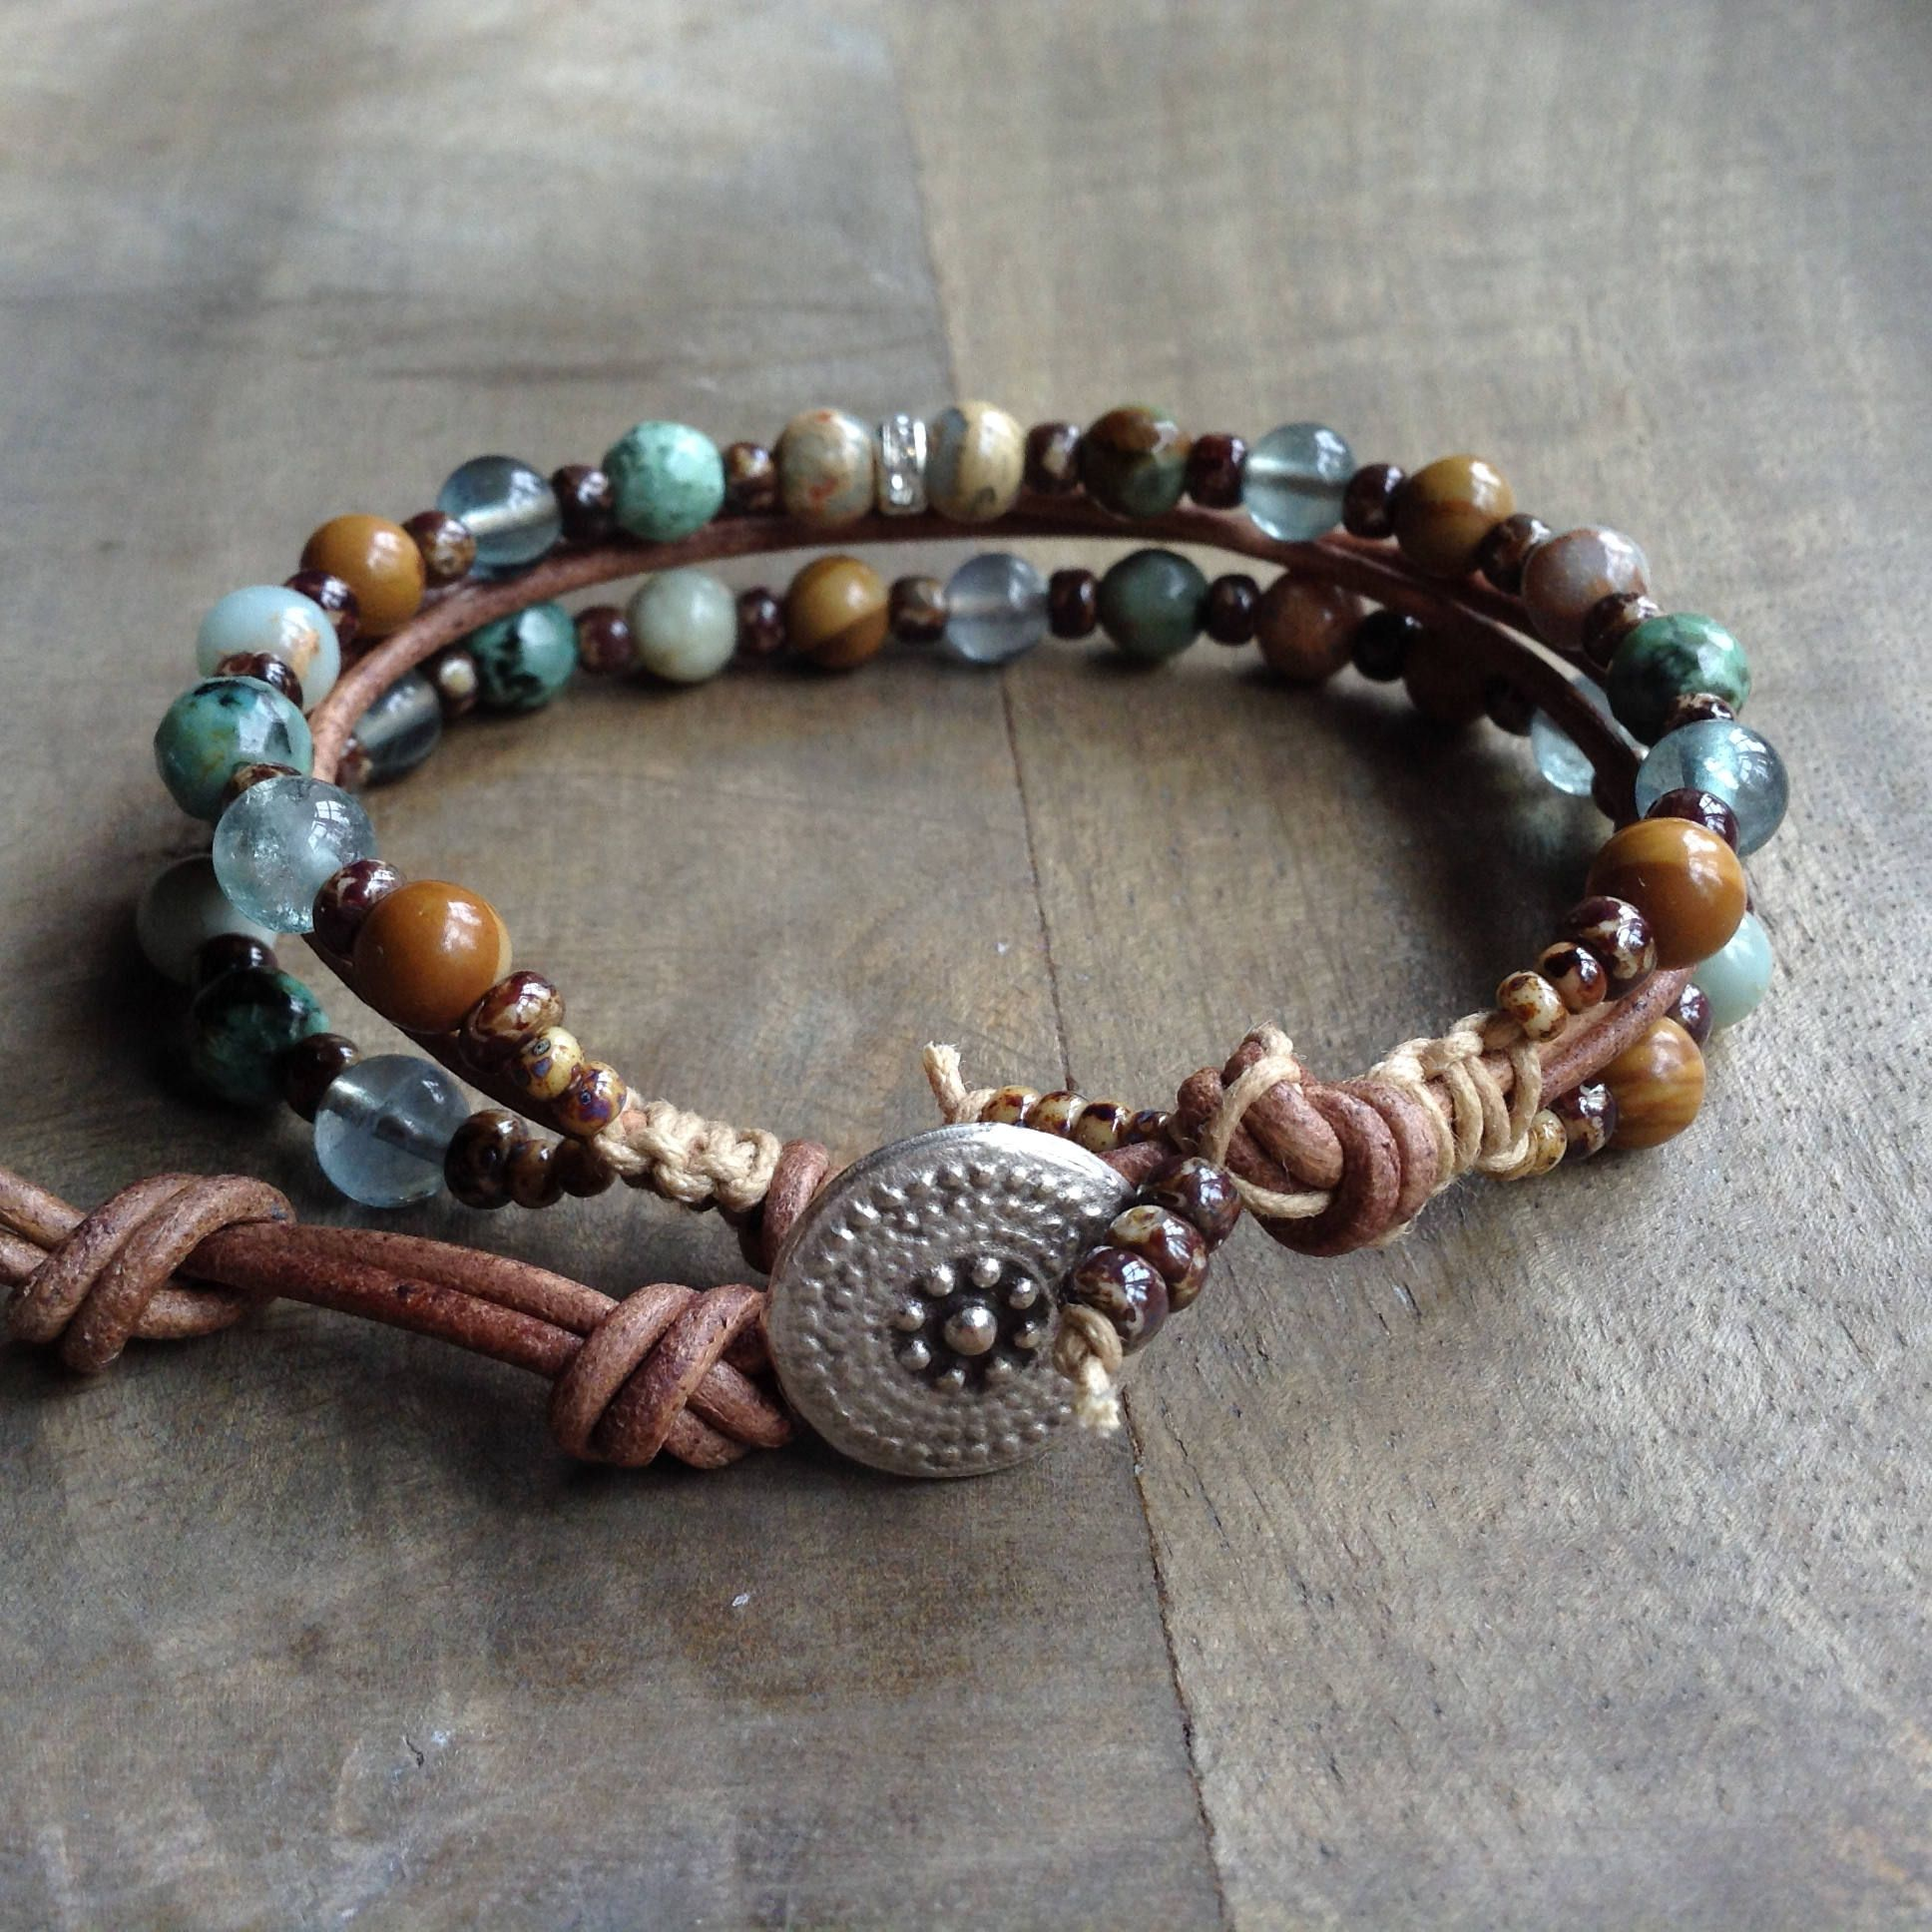 Boho Chic Bracelet Womens Jewelry